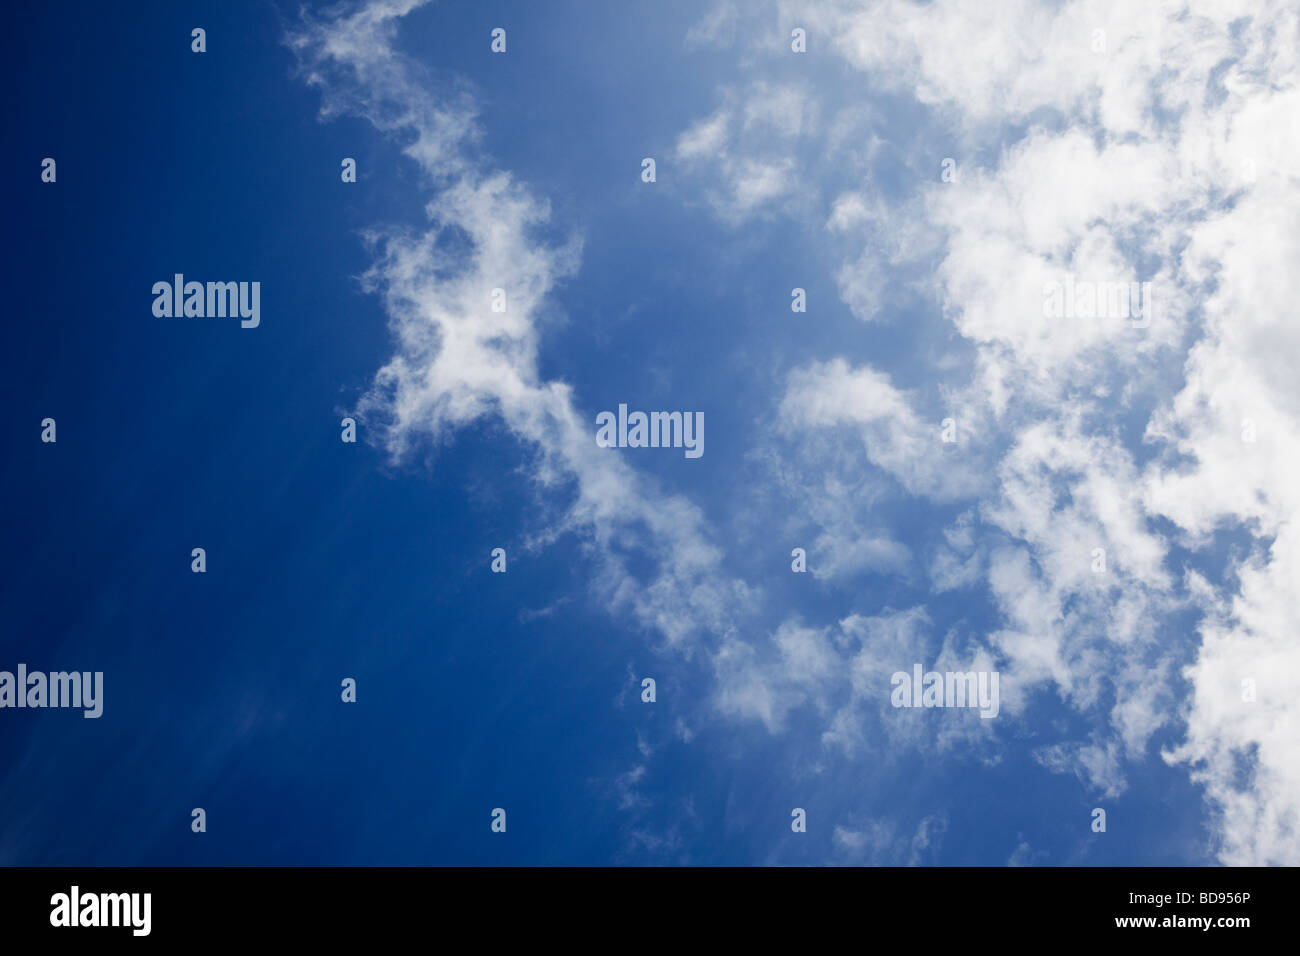 Blue sky with cirrus clouds looking up - Stock Image